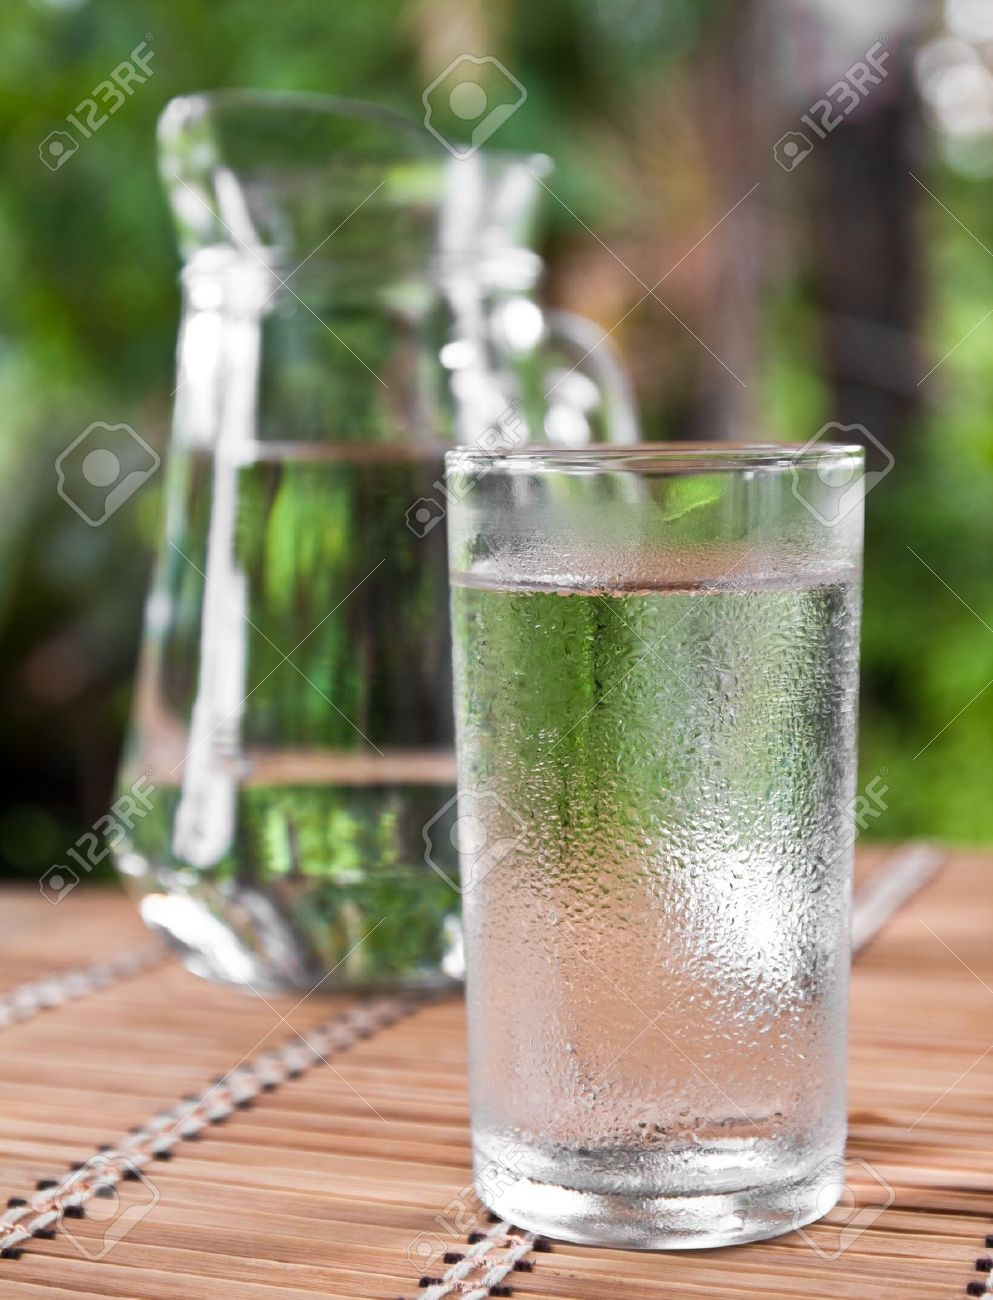 Marvelous Drinking Water In Glass On The Table Interior Design Ideas Inesswwsoteloinfo